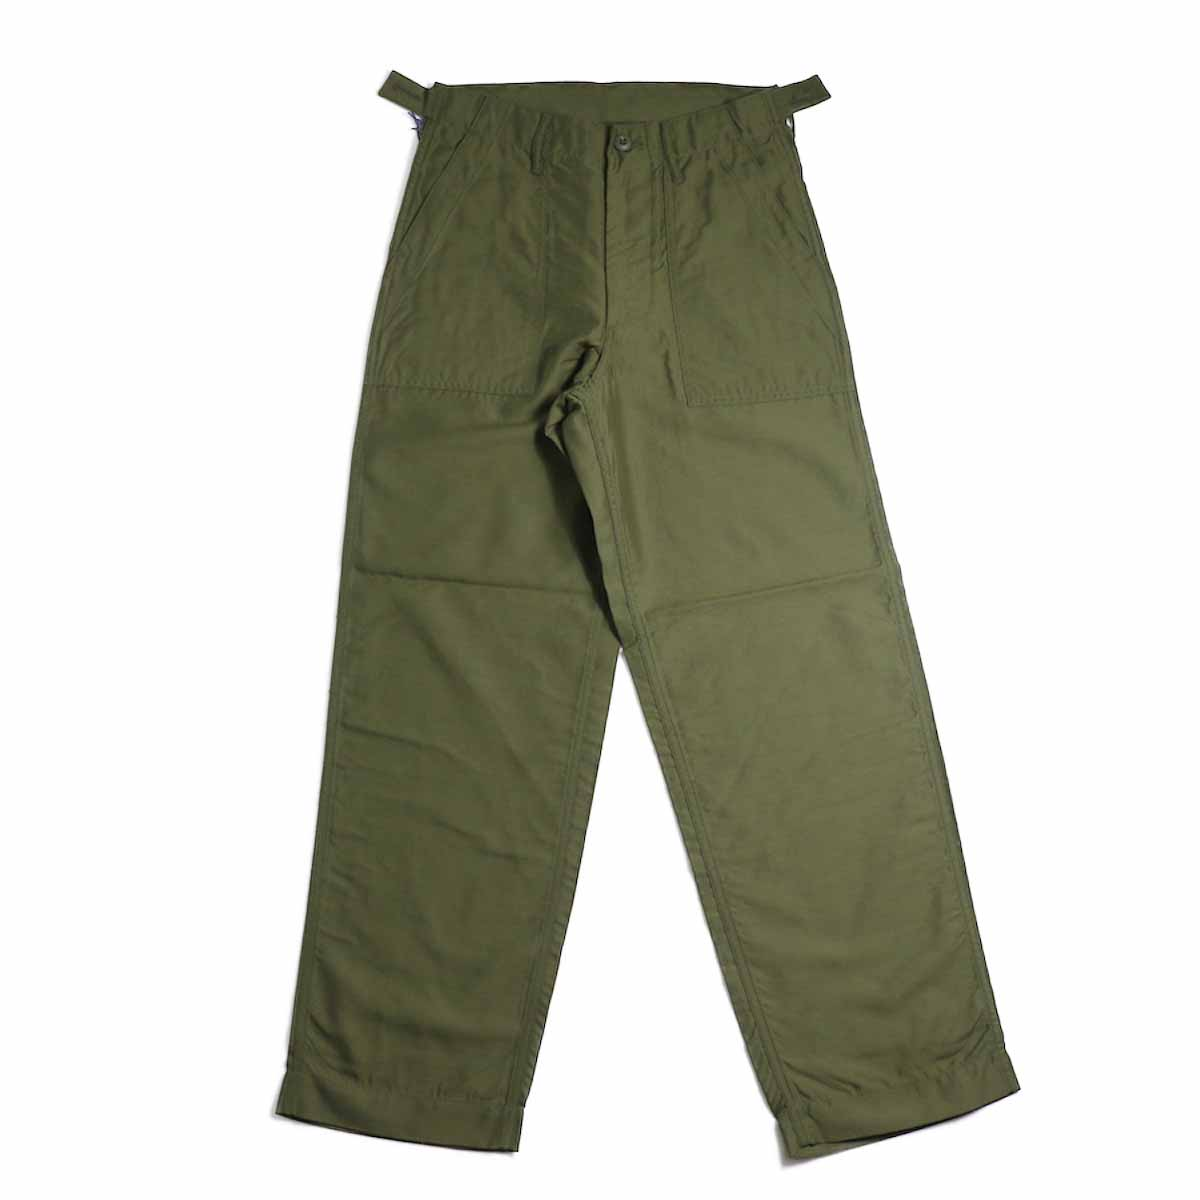 Needles / Fatigue Pant -t/c Back Sateen (Olive)